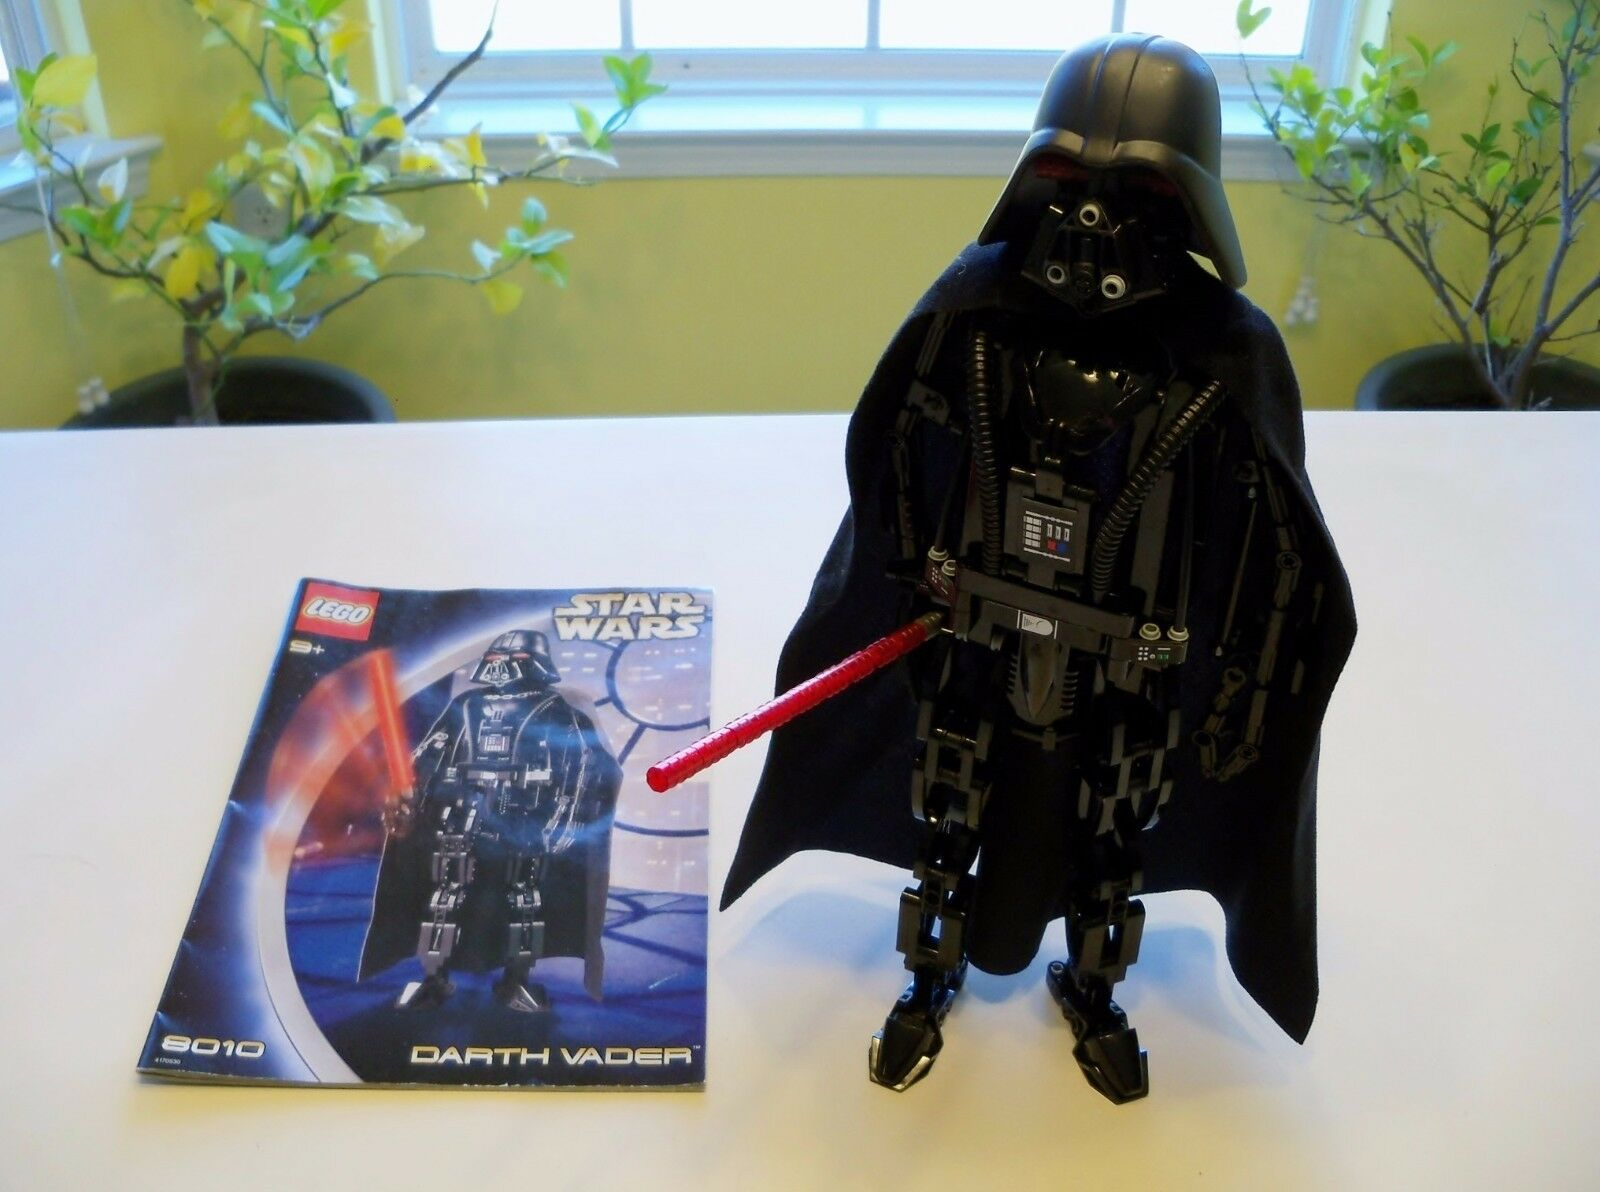 LEGO Star Wars - Super Rare Technic 8010 Darth Vader - Complete w  Instructions